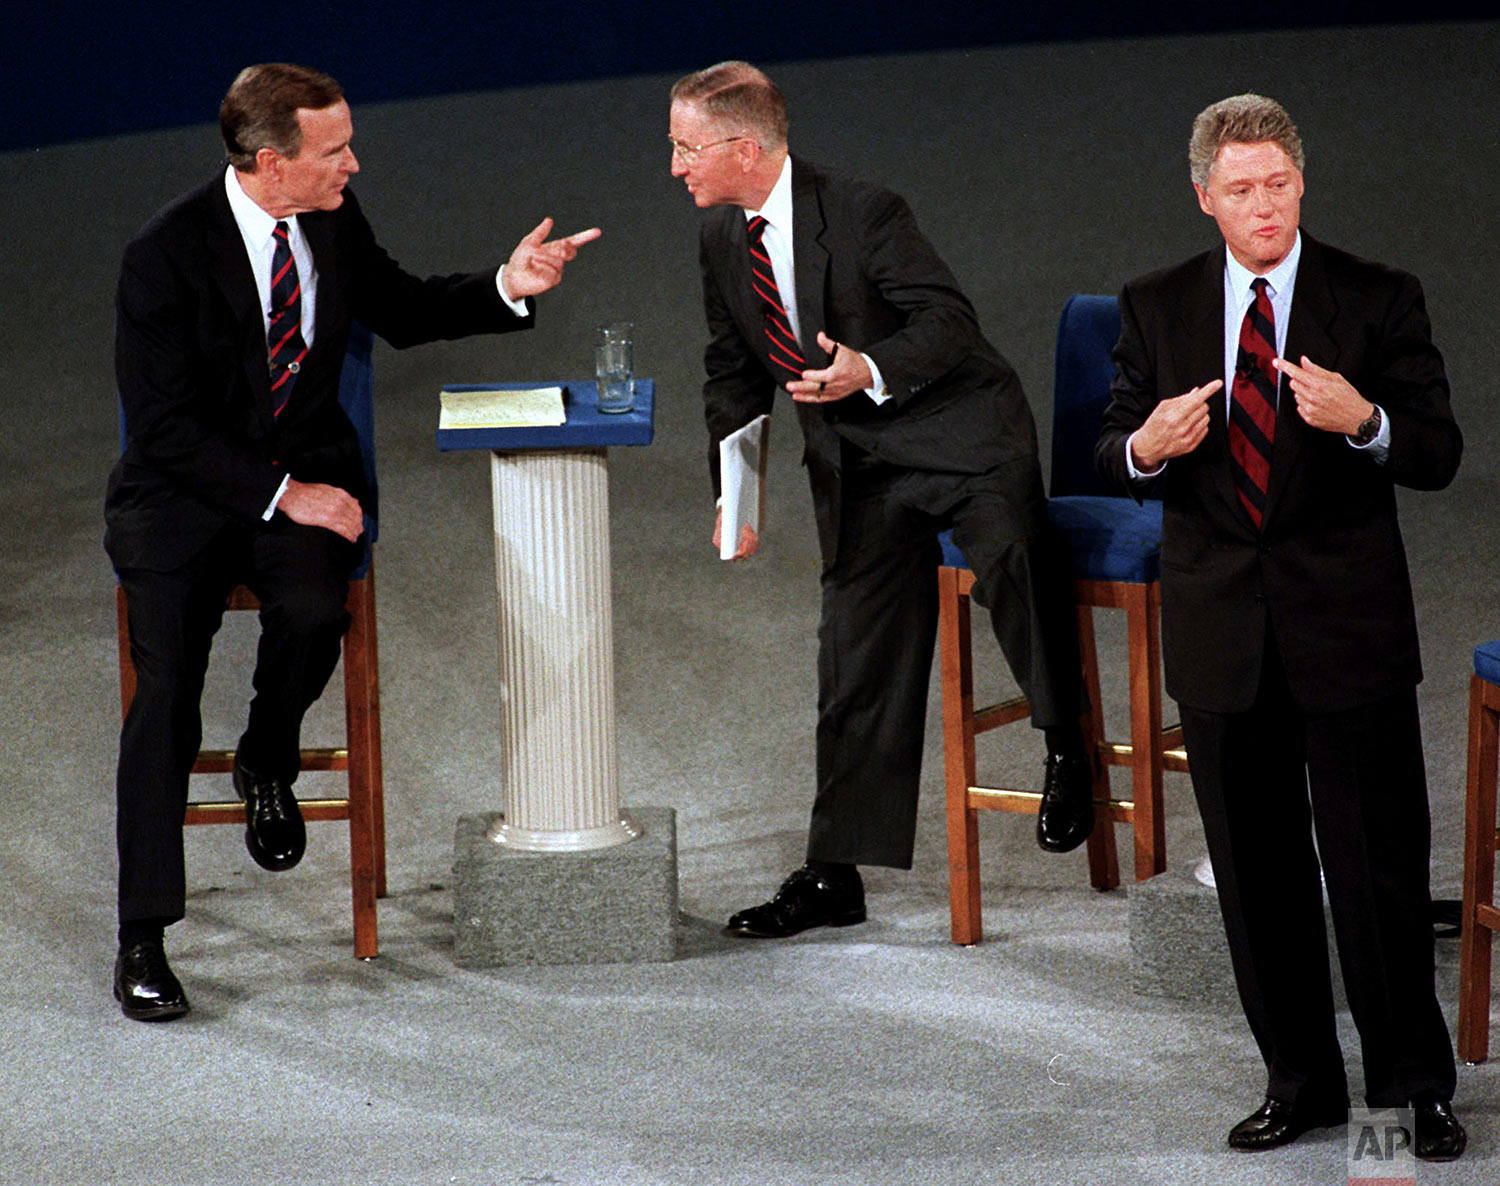 President Bush, left, talks with independent candidate Ross Perot as Democratic candidate Bill Clinton stands aside at the end of their second presidential debate Oct. 15, 1992, in Richmond, Va. (AP Photo/Marcy Nighswander)